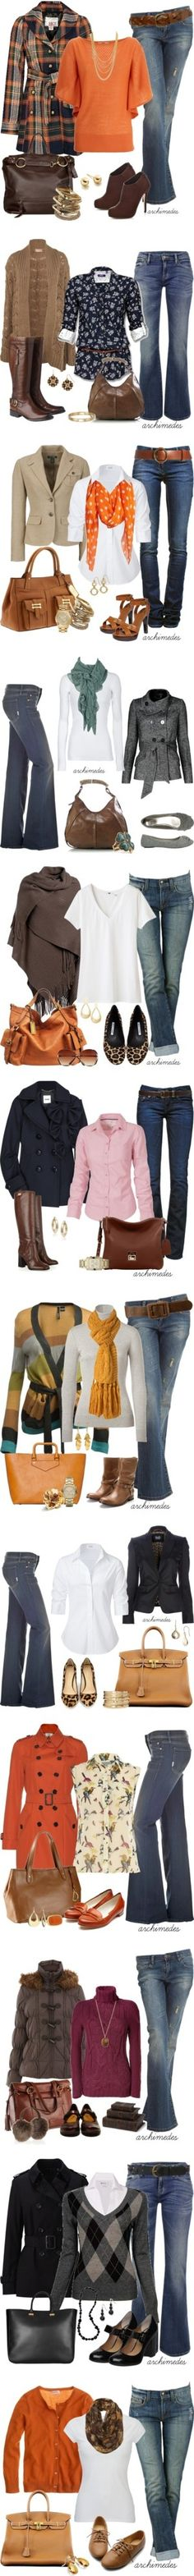 Fall Wardrobe Ideas